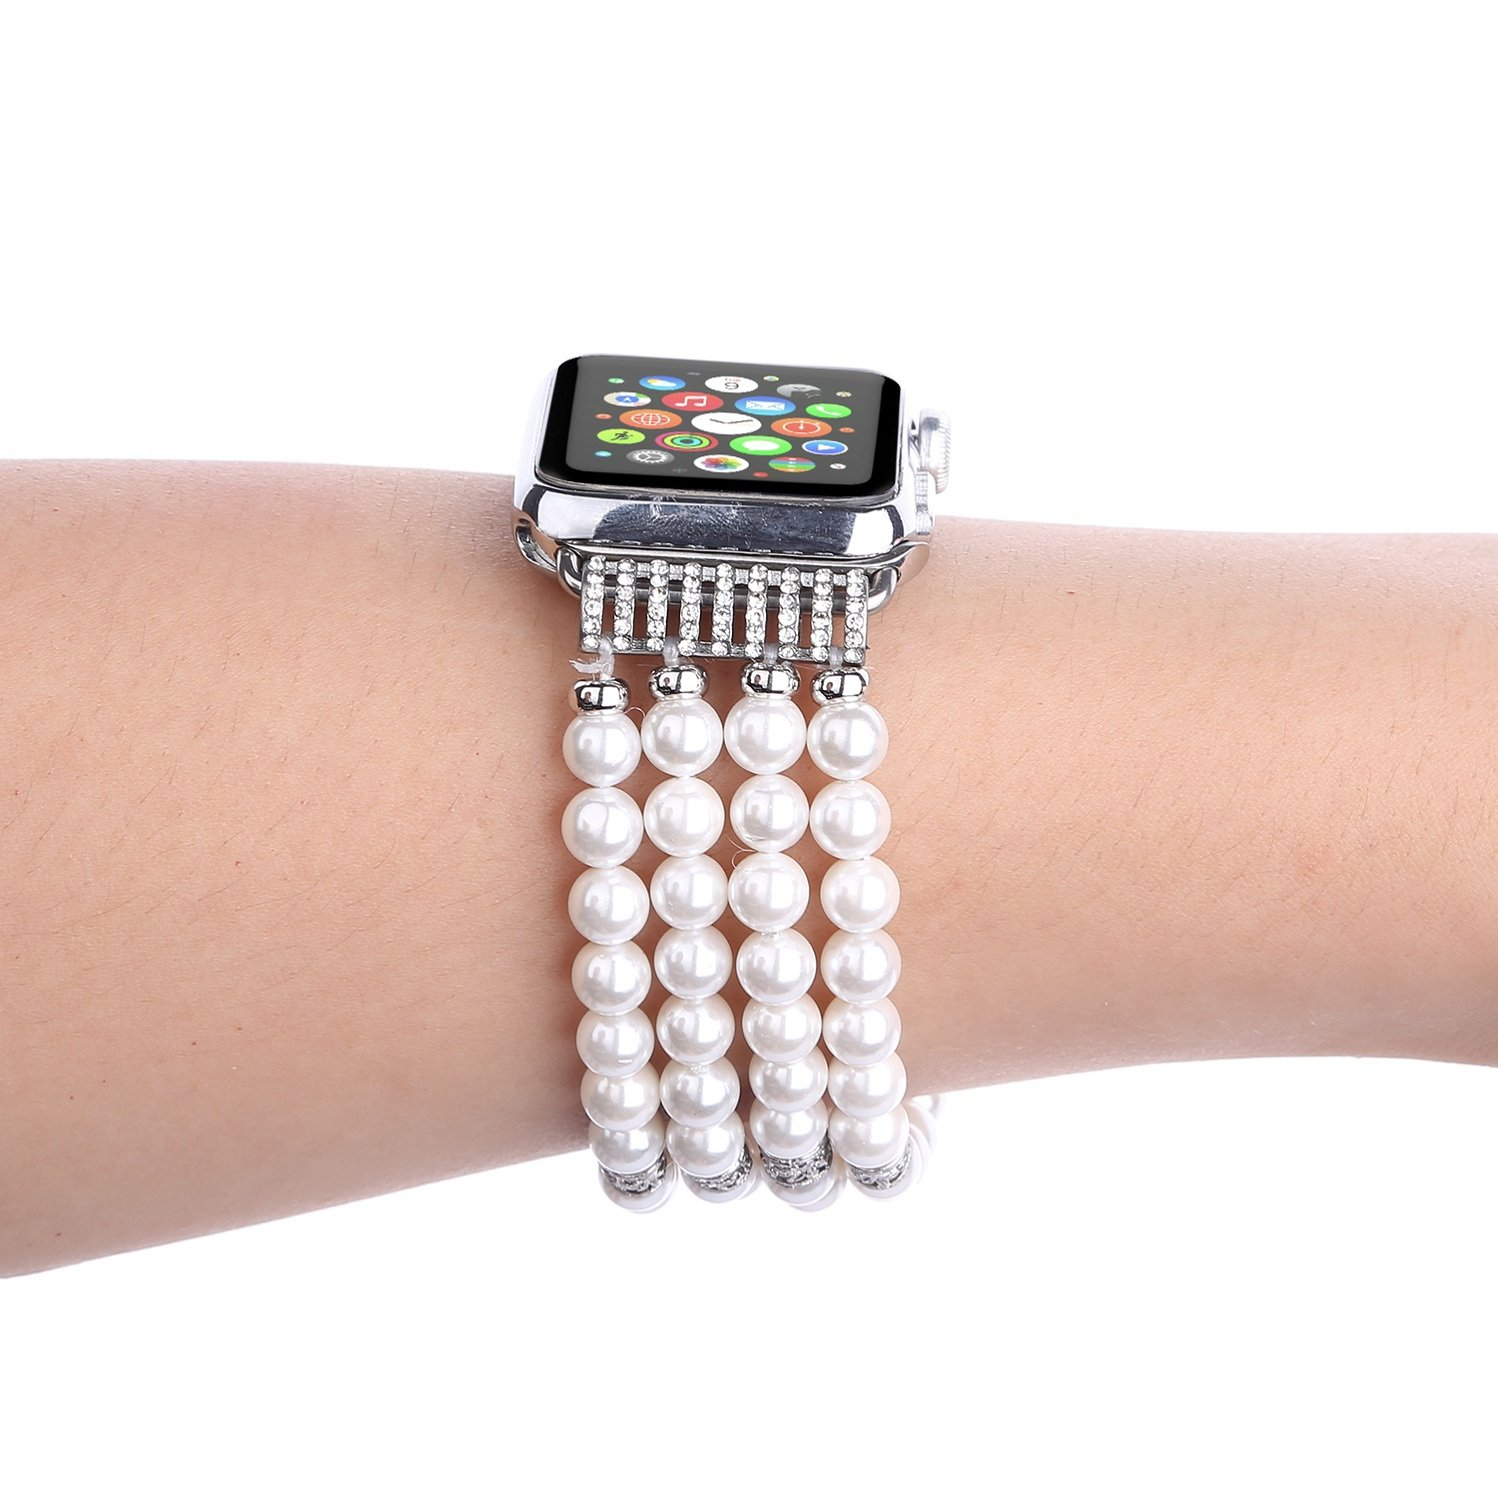 Juzzhou Band For Apple Watch iWatch Series 1/2/3 Replacement Bracelet Handmade Beaded Faux Pearl Natural Bling Stone Crystal Agate Jewels Elastic Stretch Wrist Strap Wristband Wriststrap White 38mm by Juzzhou (Image #5)